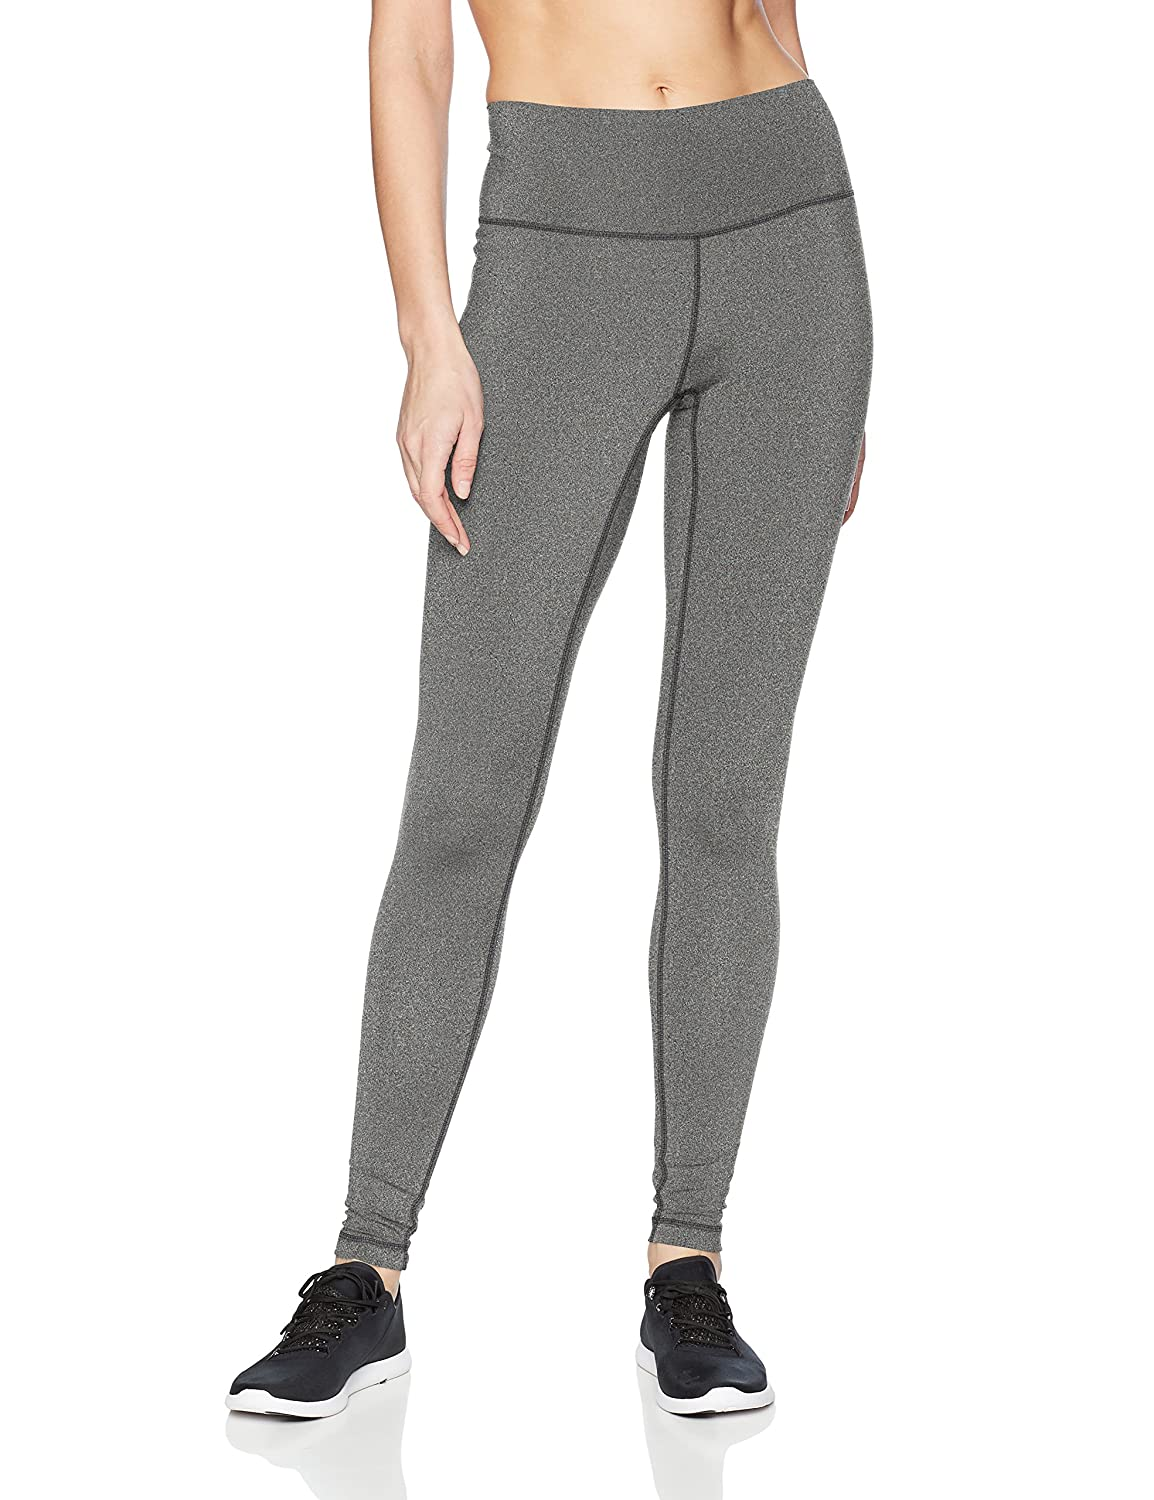 ede8e00a5bbad8 Amazon.com: adidas Women's Believe This High Rise Tights: Clothing